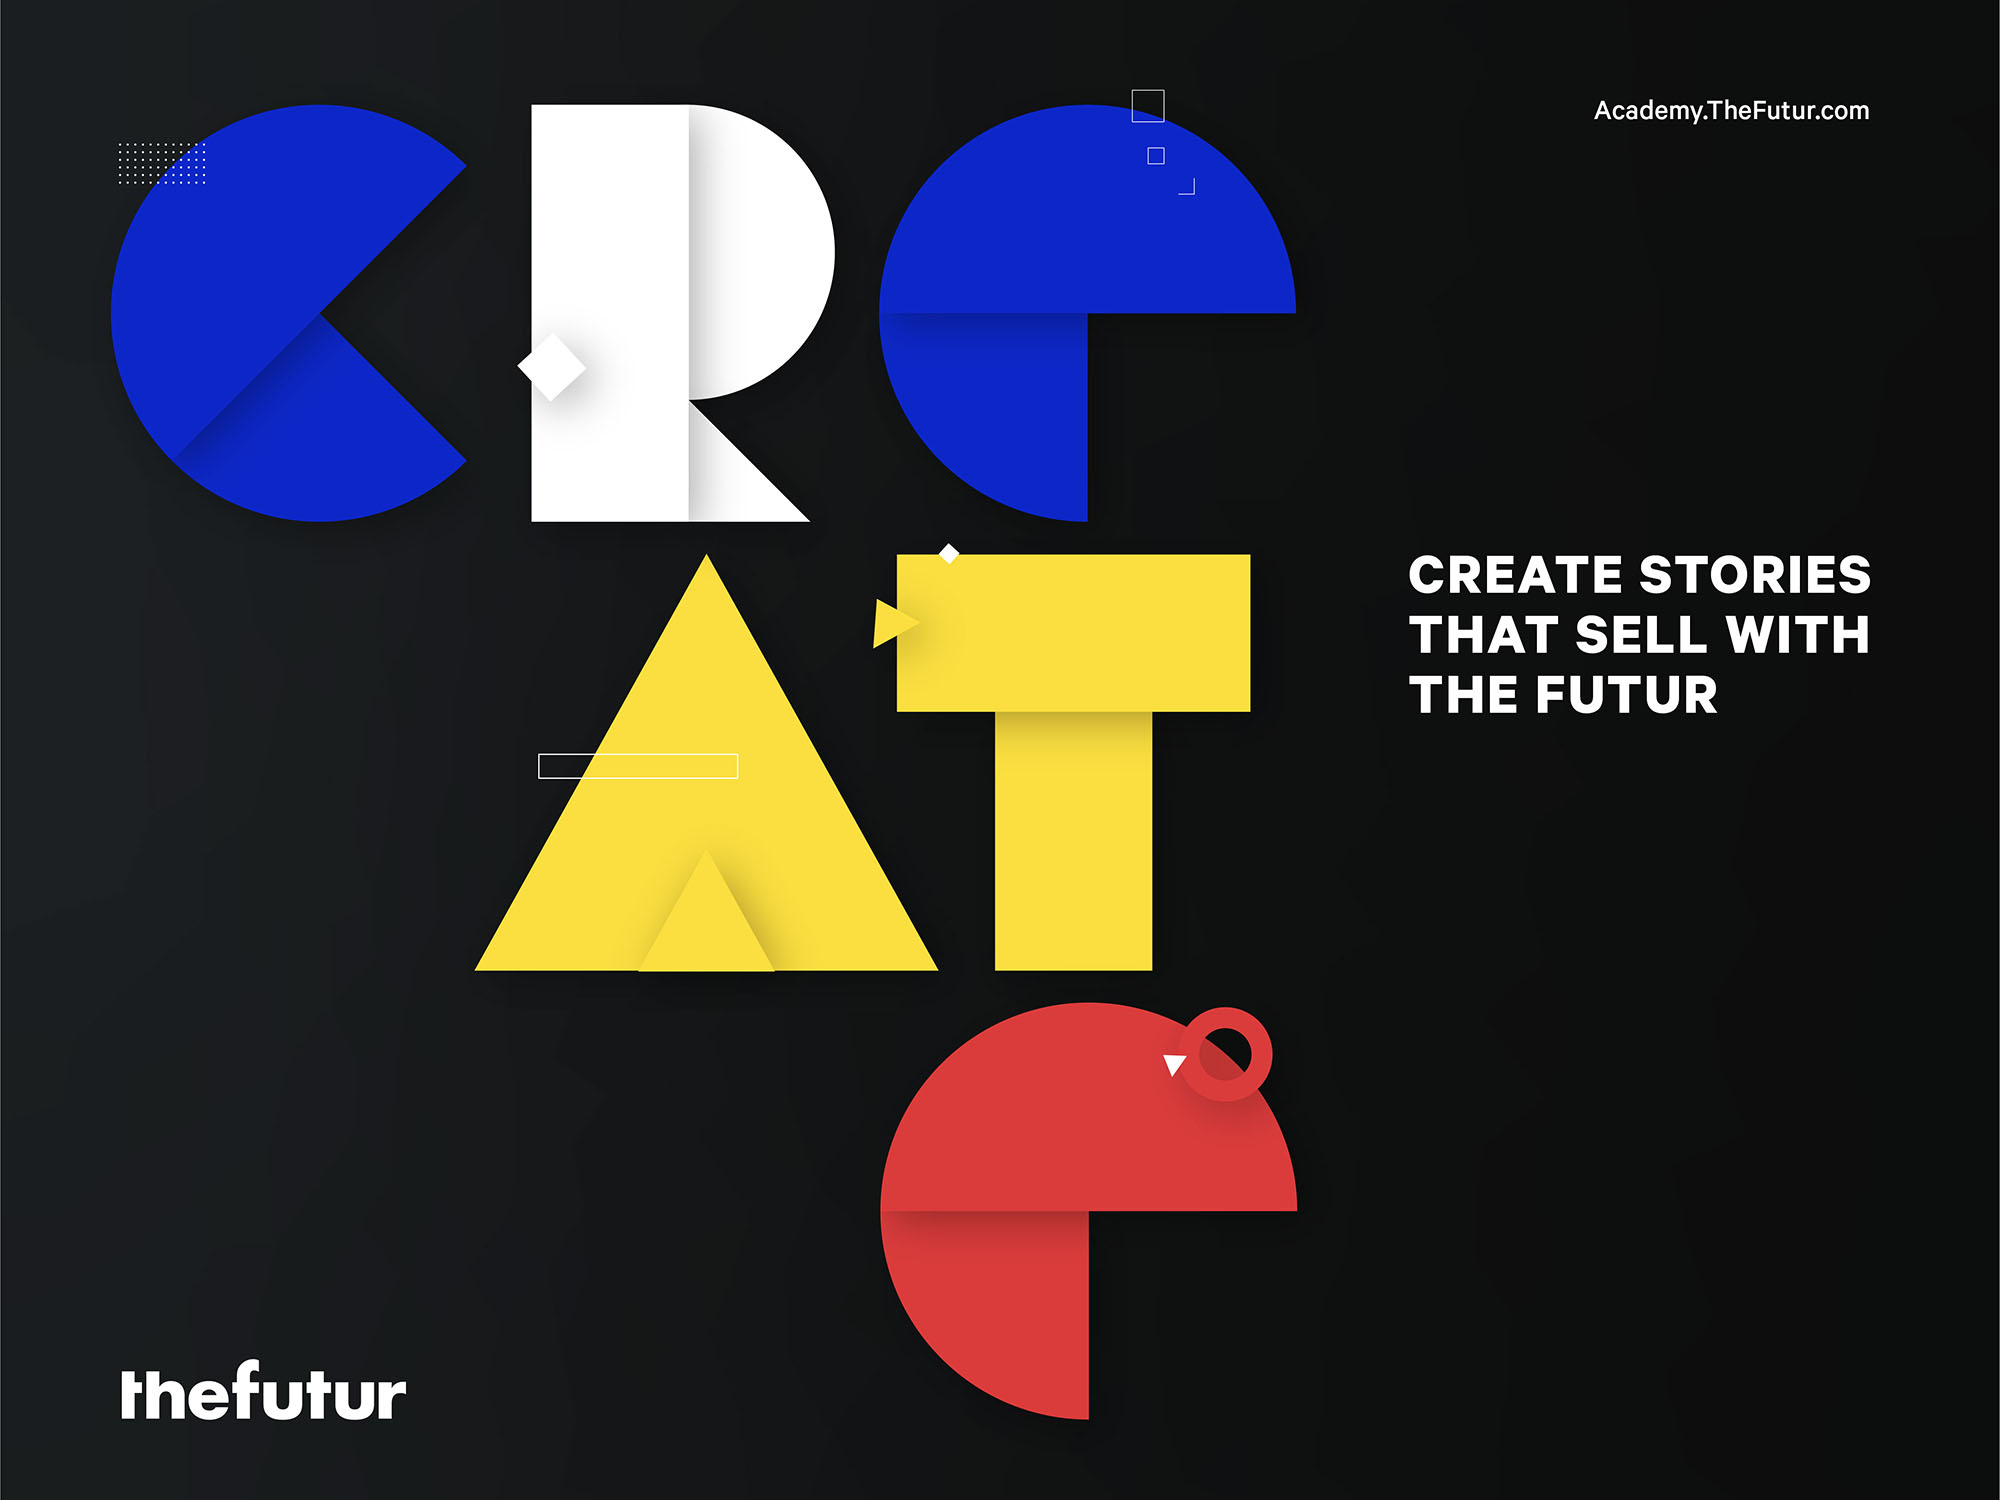 Create Stories that Sell with The Futur